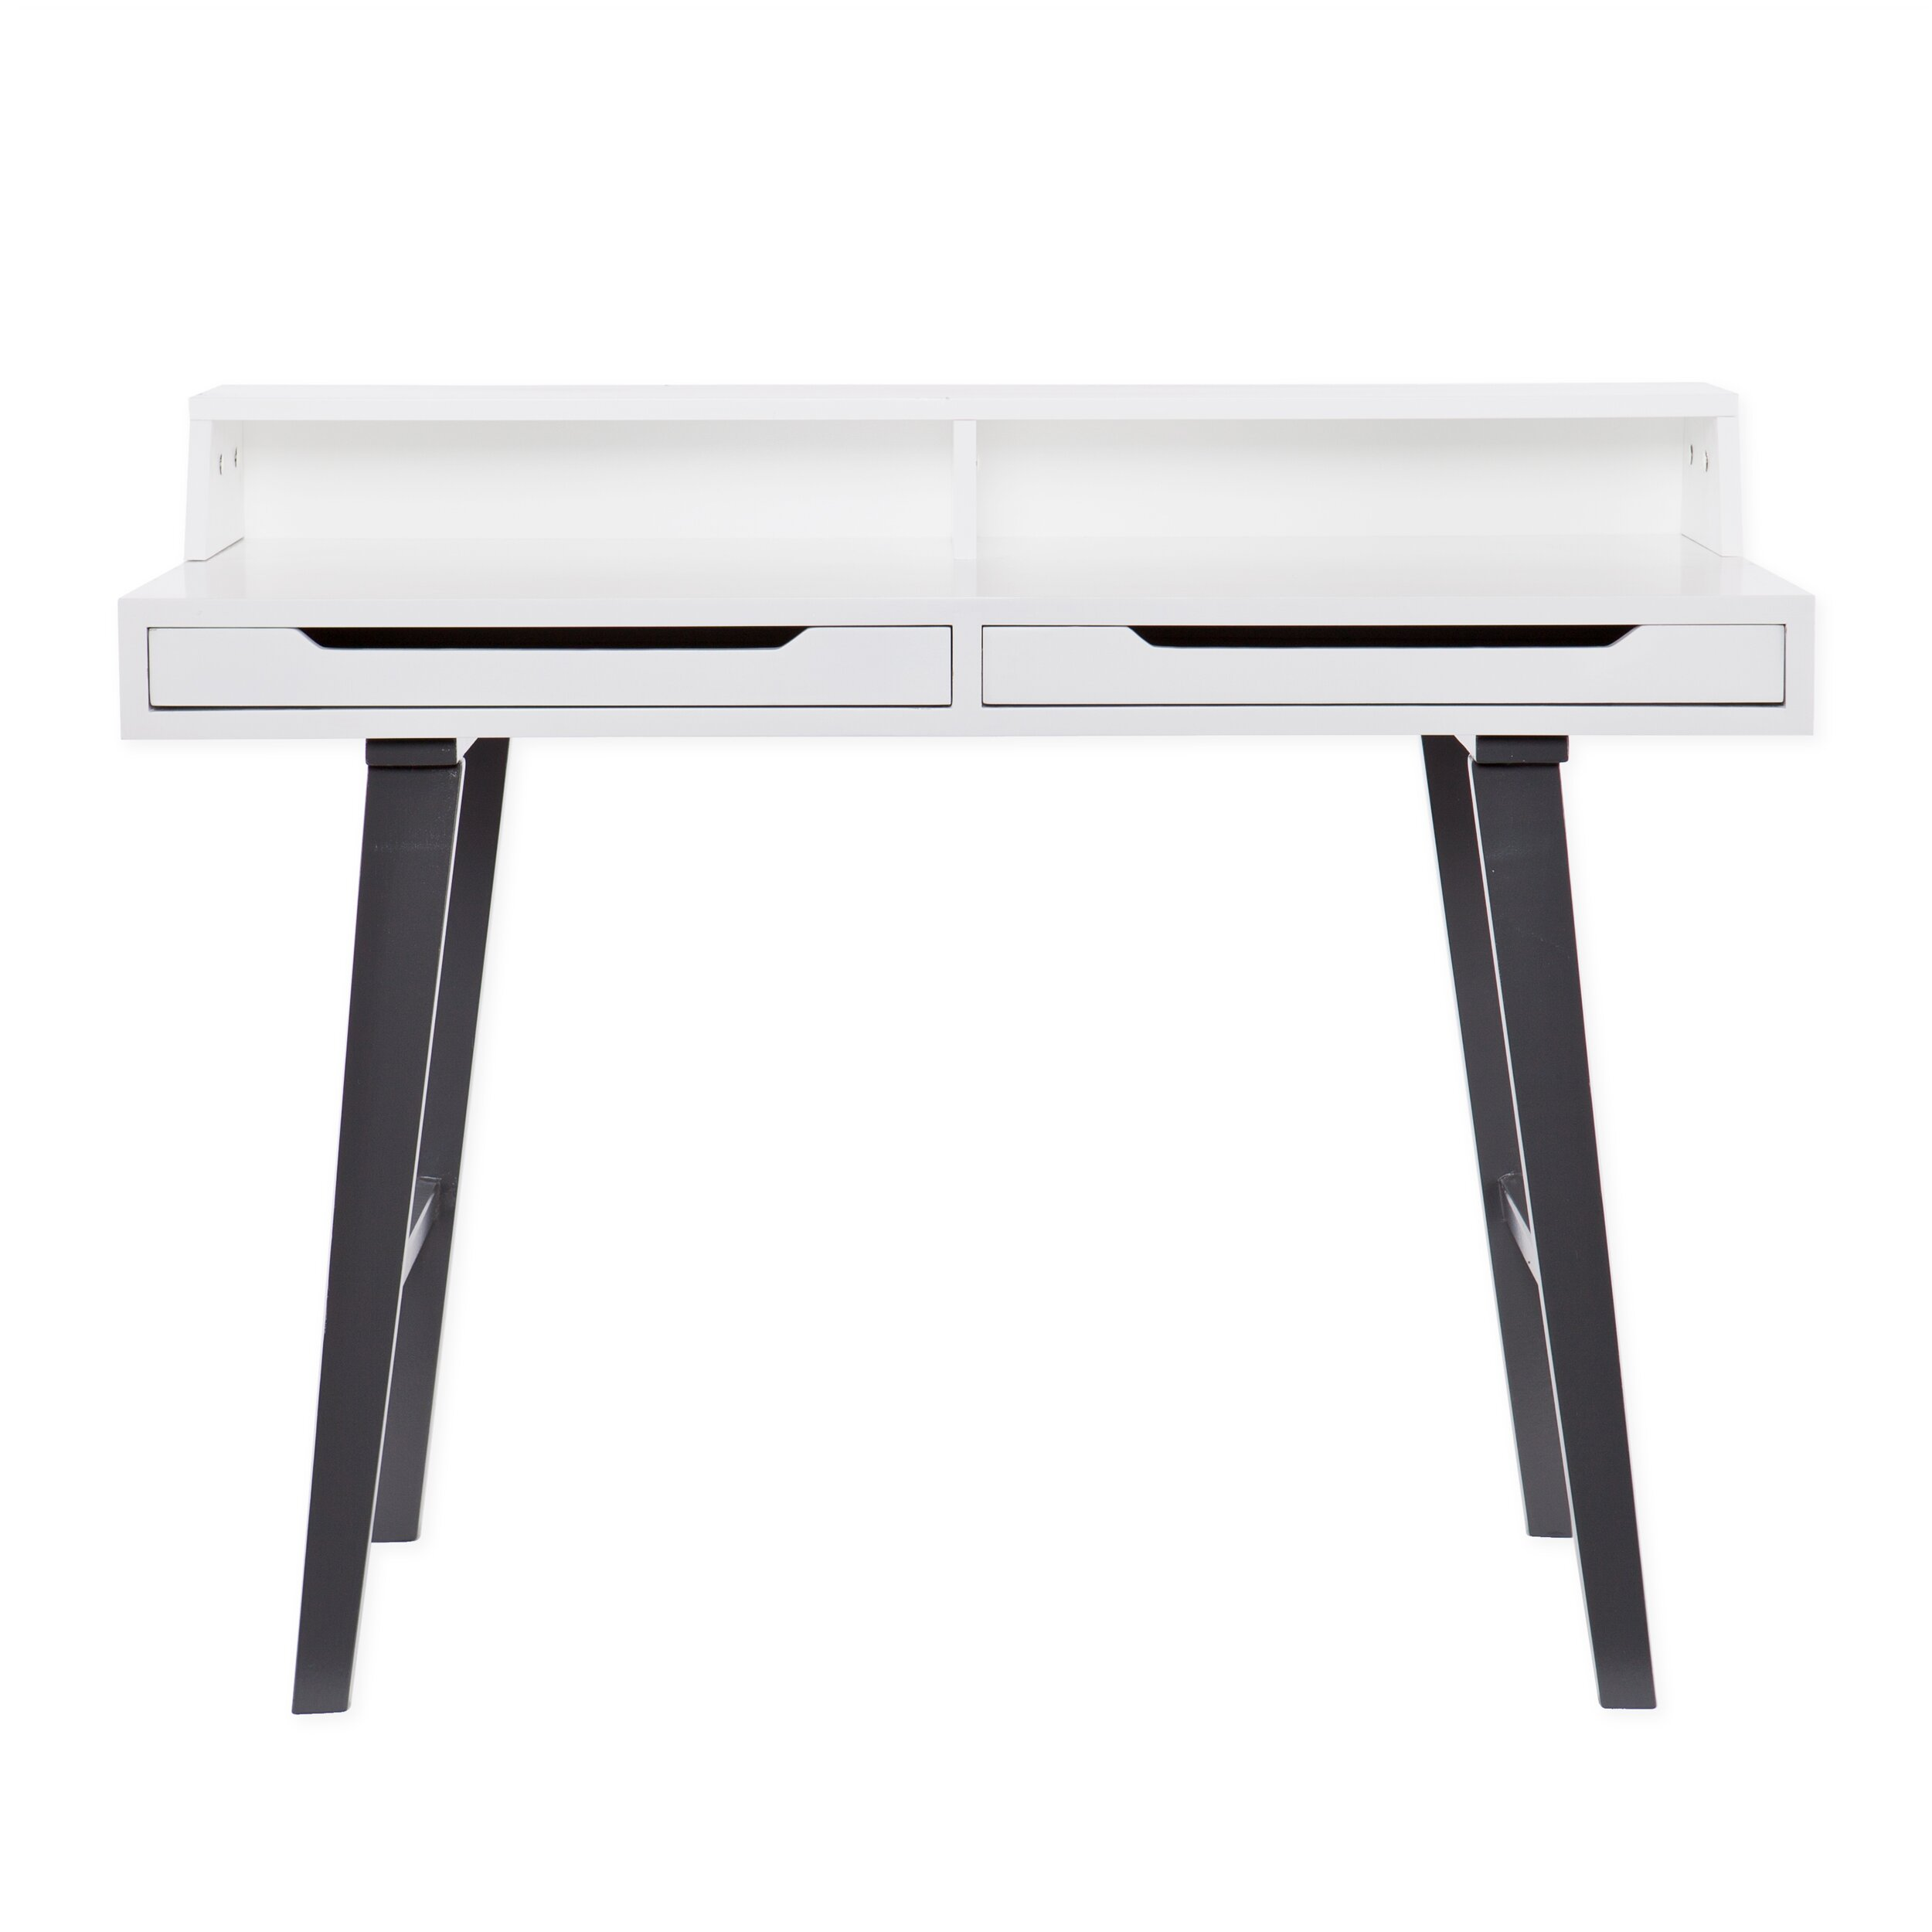 Amazing photo of Wildon Home ® Holly and Martin Writing Desk & Reviews Wayfair with #5A4E4D color and 2500x2500 pixels